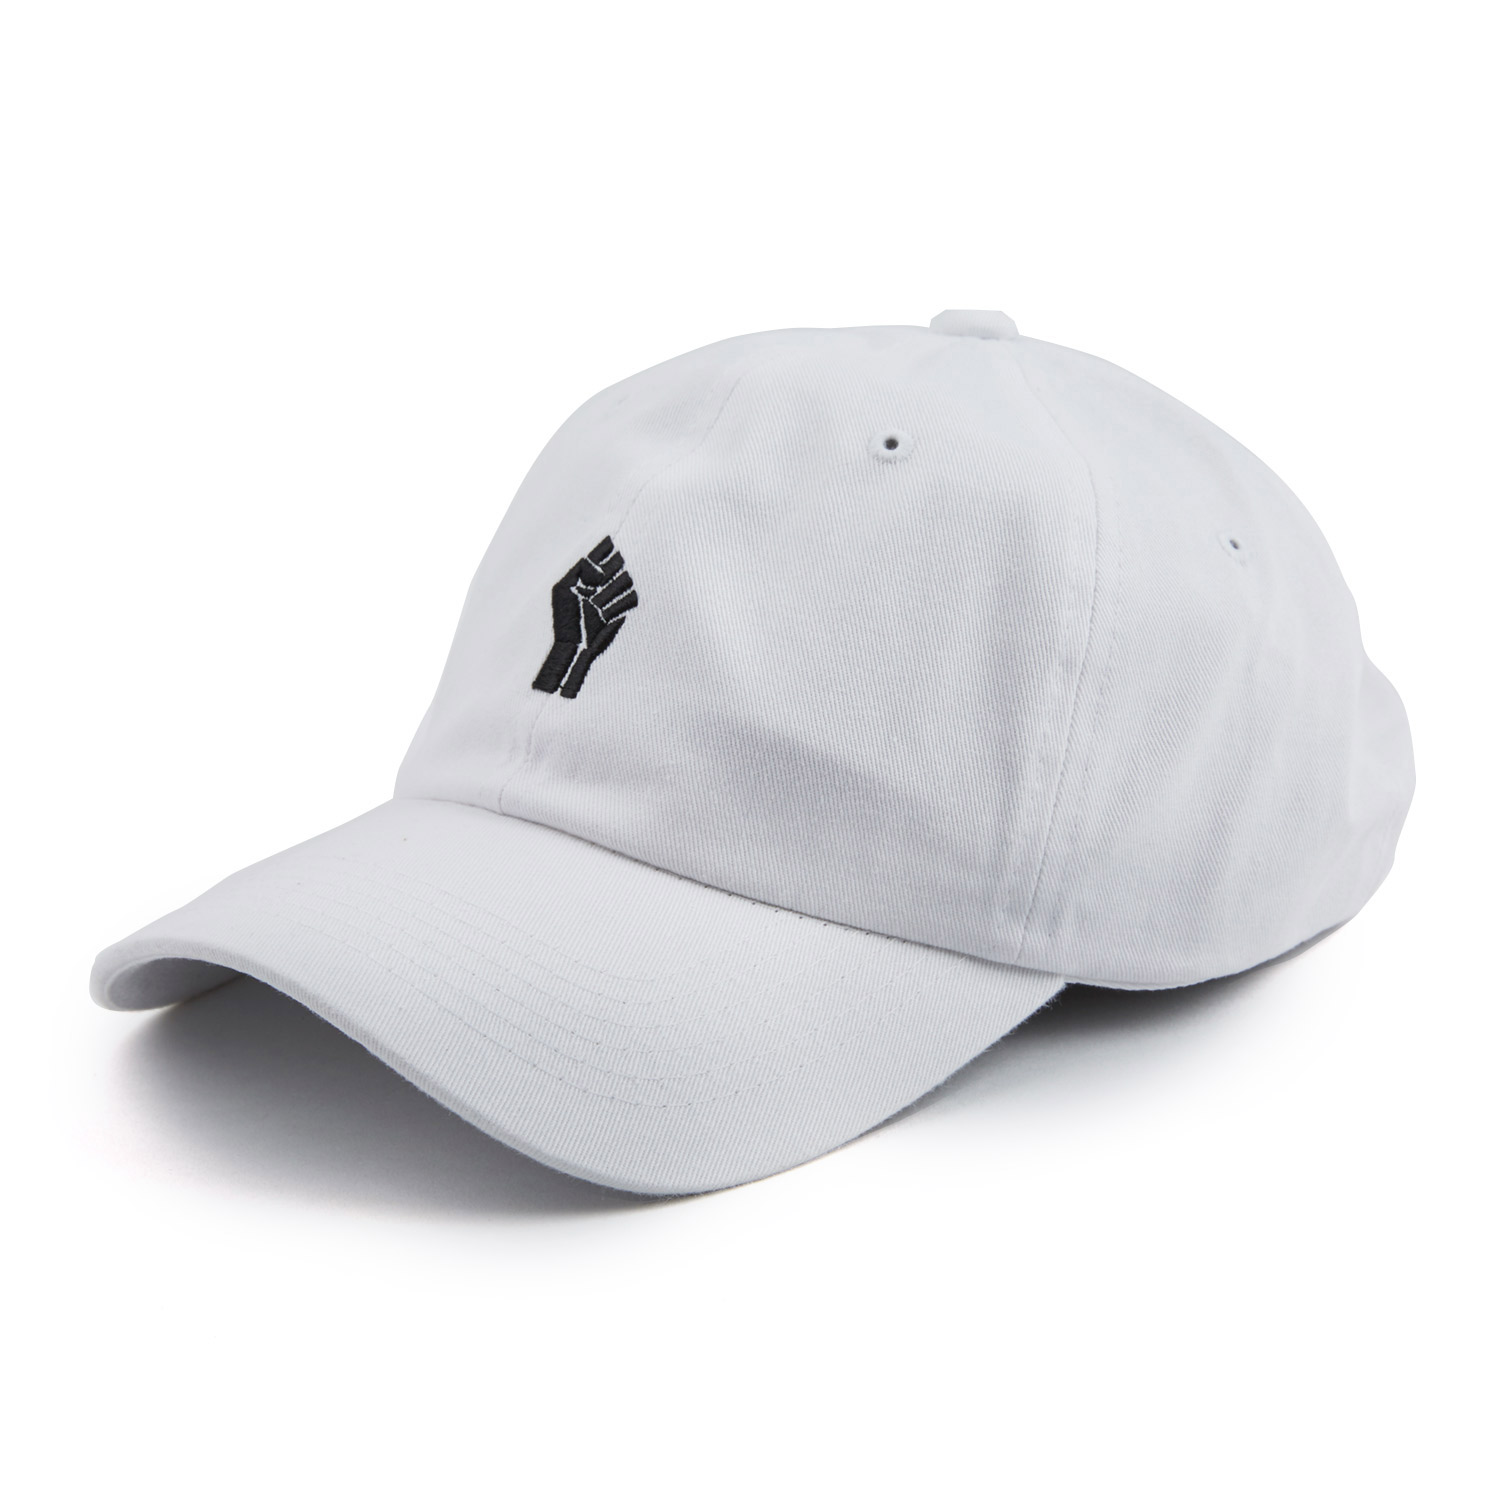 8960e93590 Black Fist Dad Cap    White - Any Memes - Touch of Modern